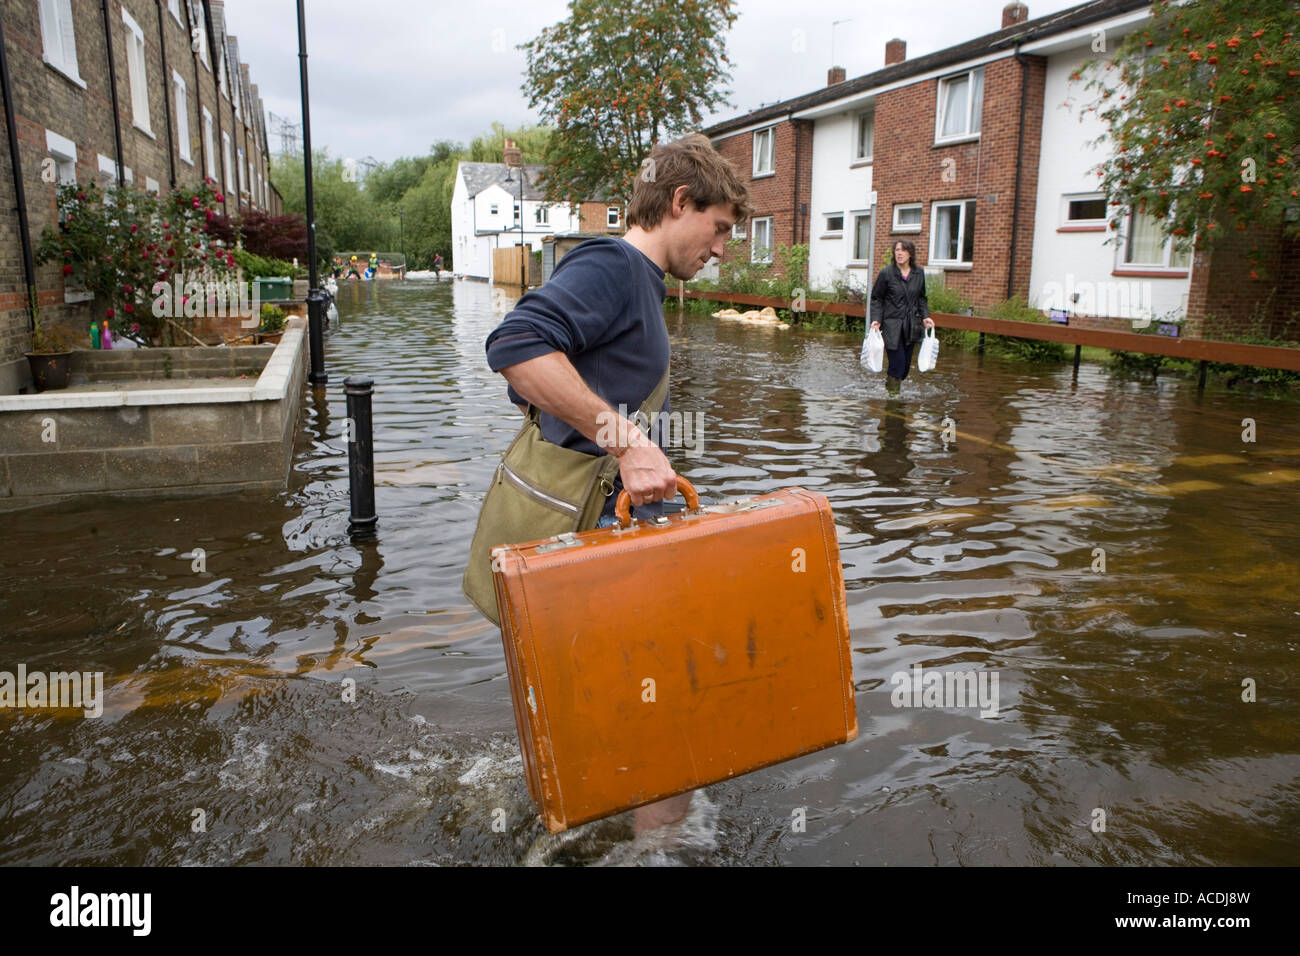 Ben Johnson leaves his home in Osney Island - Stock Image